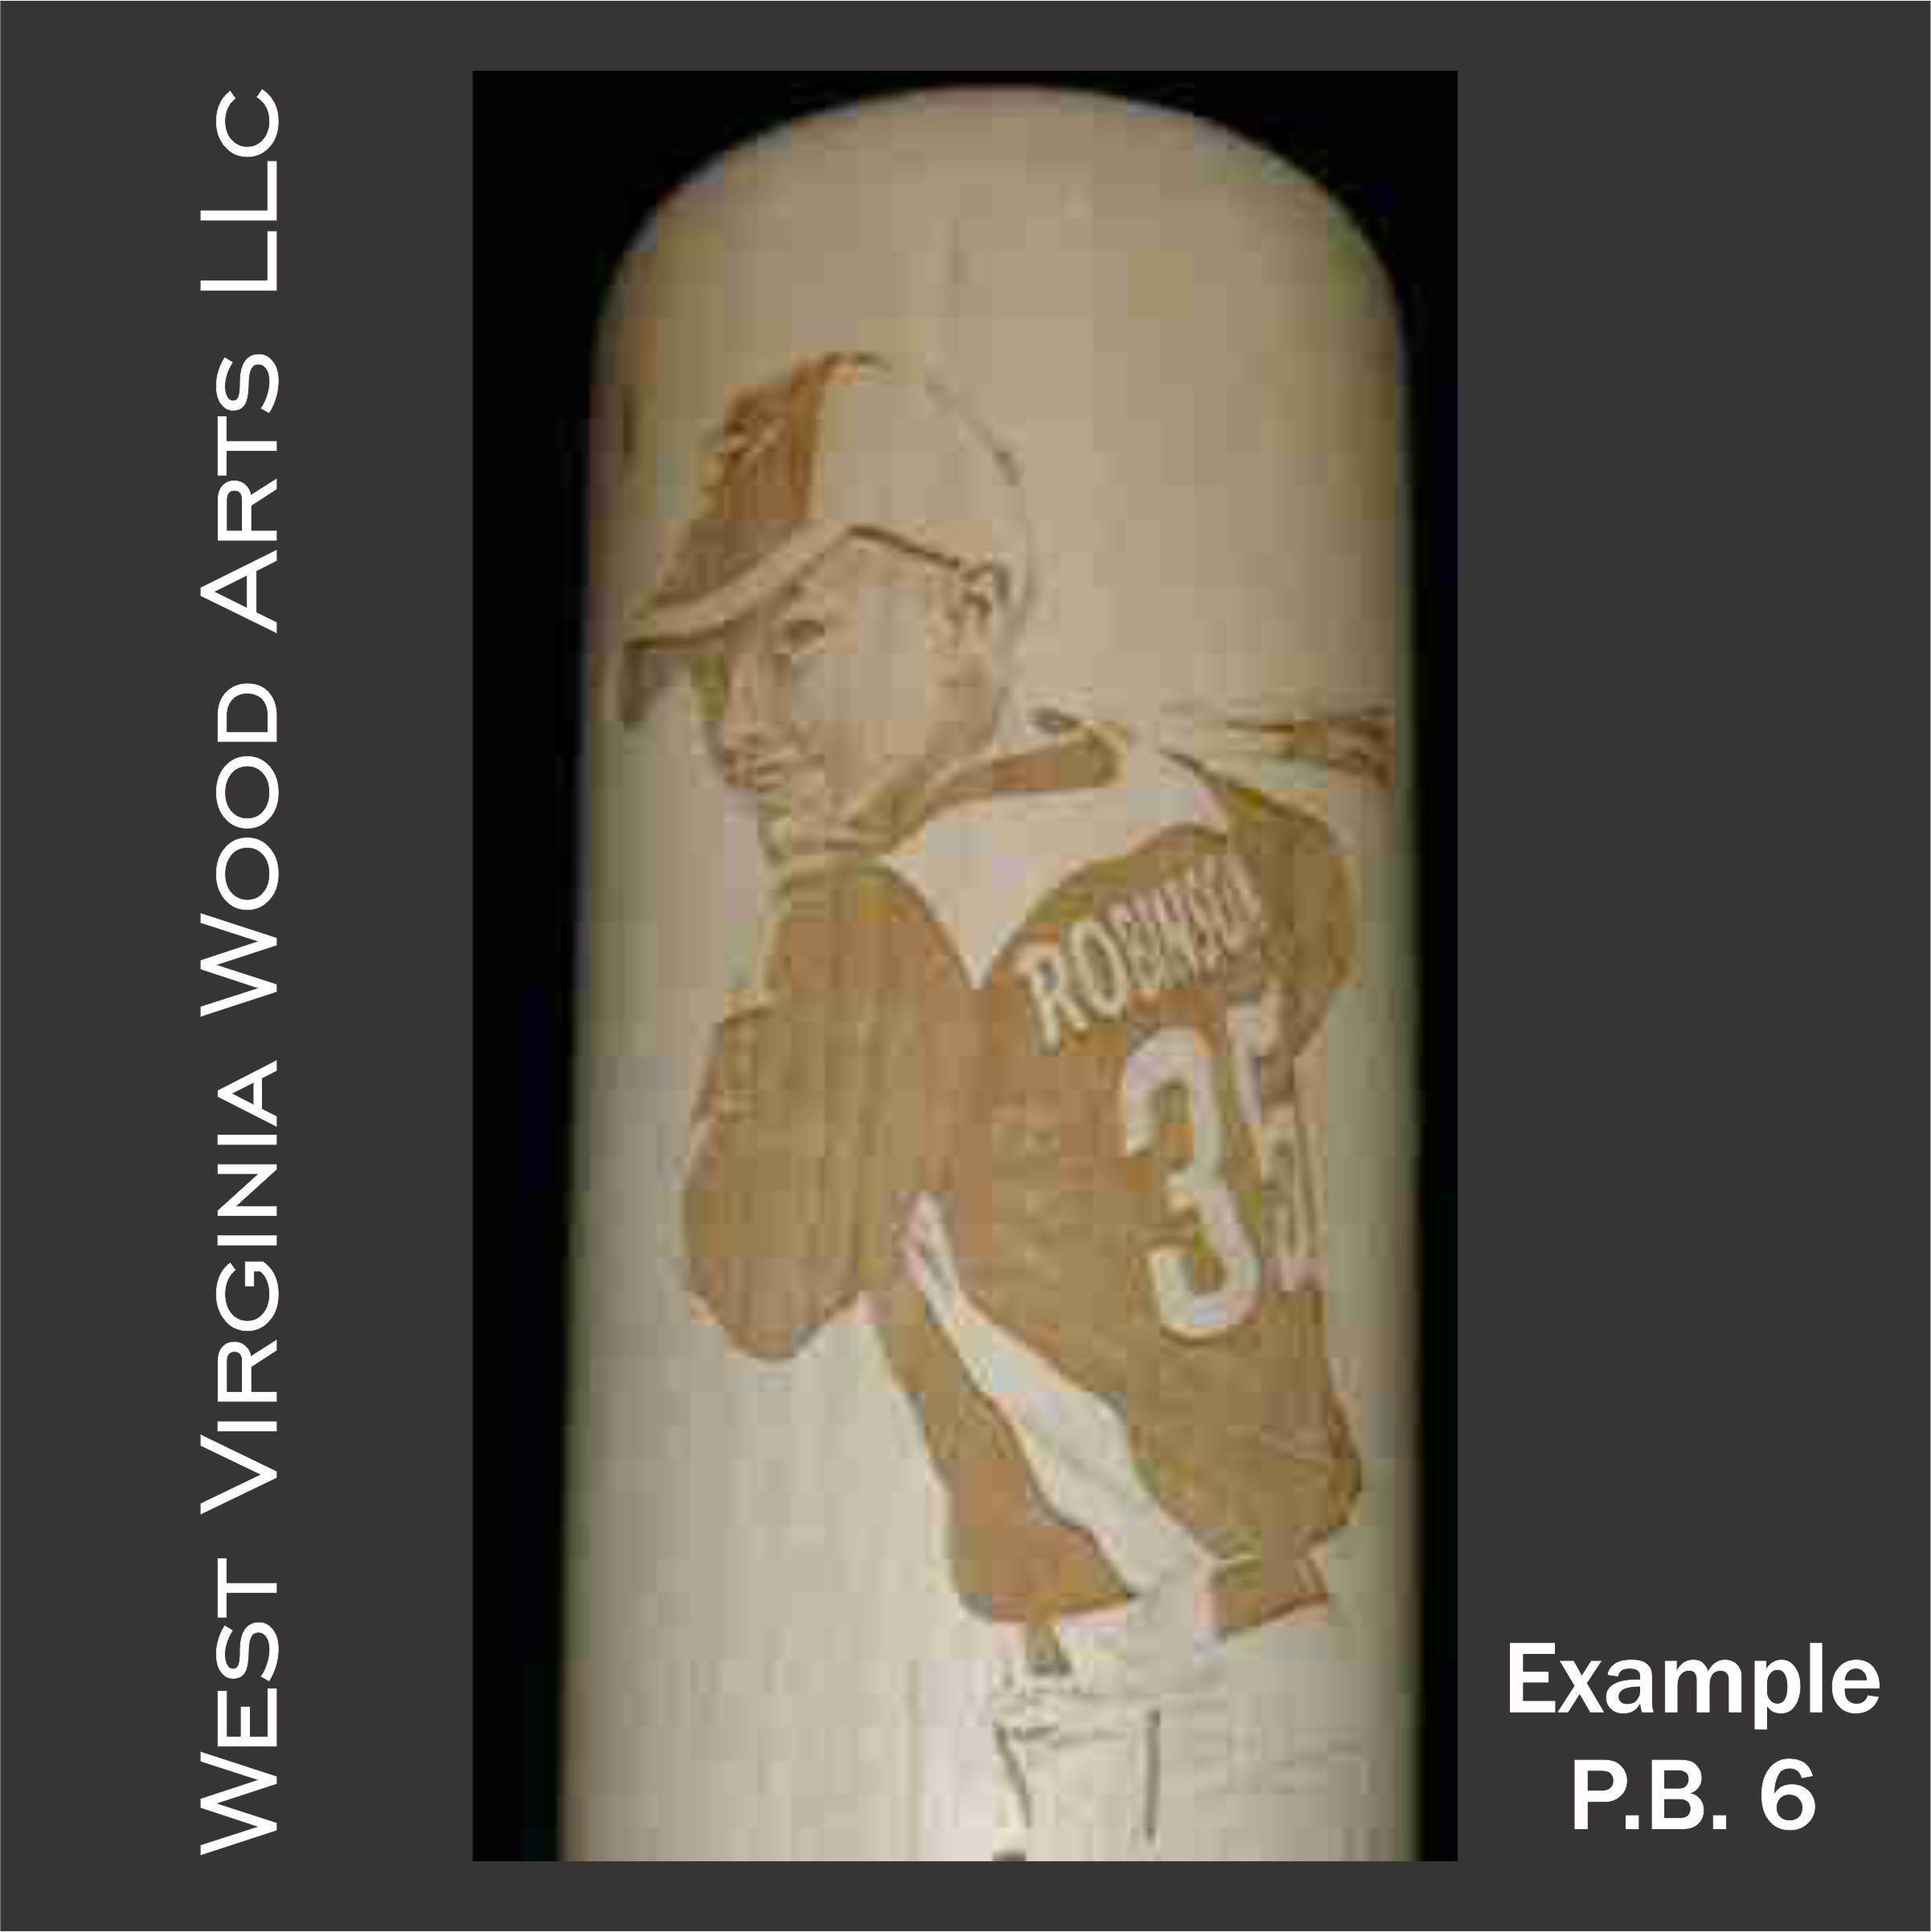 personalized maple baseball bat with up close player engraving